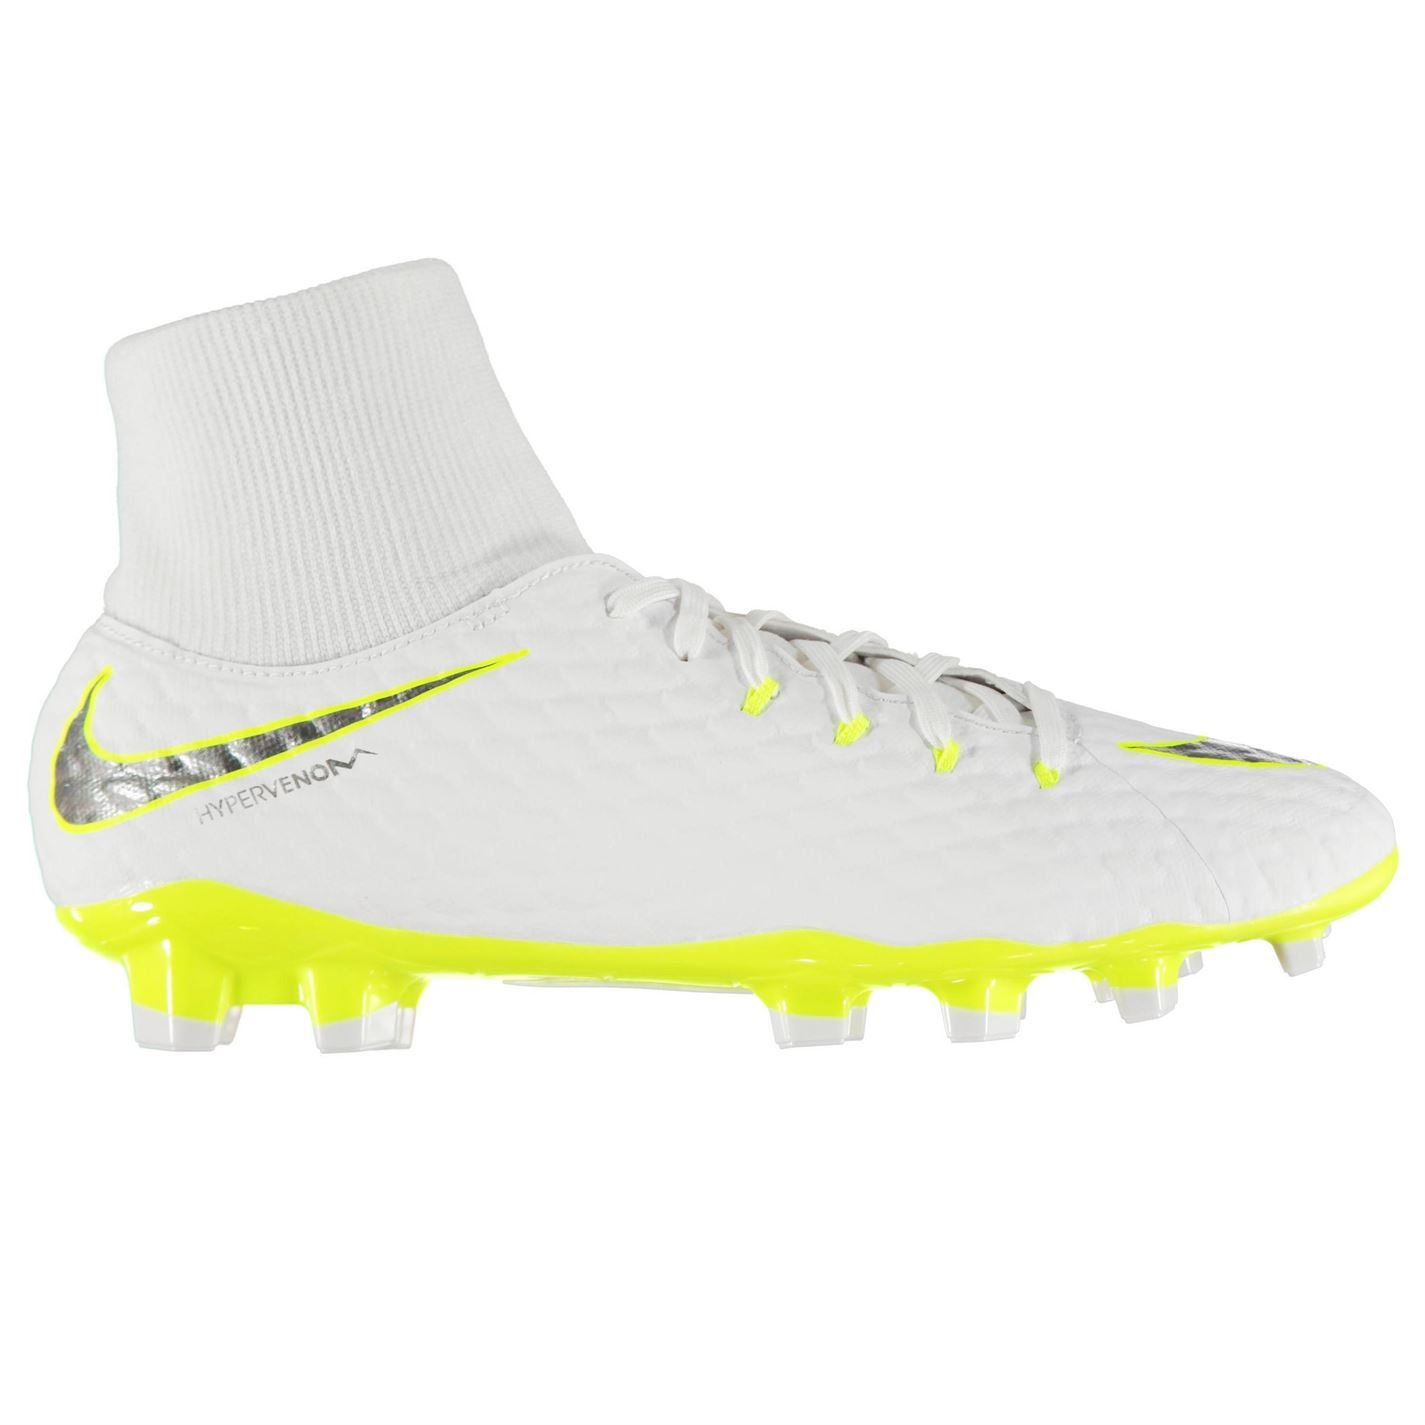 super popular 7579a bb16a Nike Hypervenom Phantom Academy DF Firm Ground Football ...